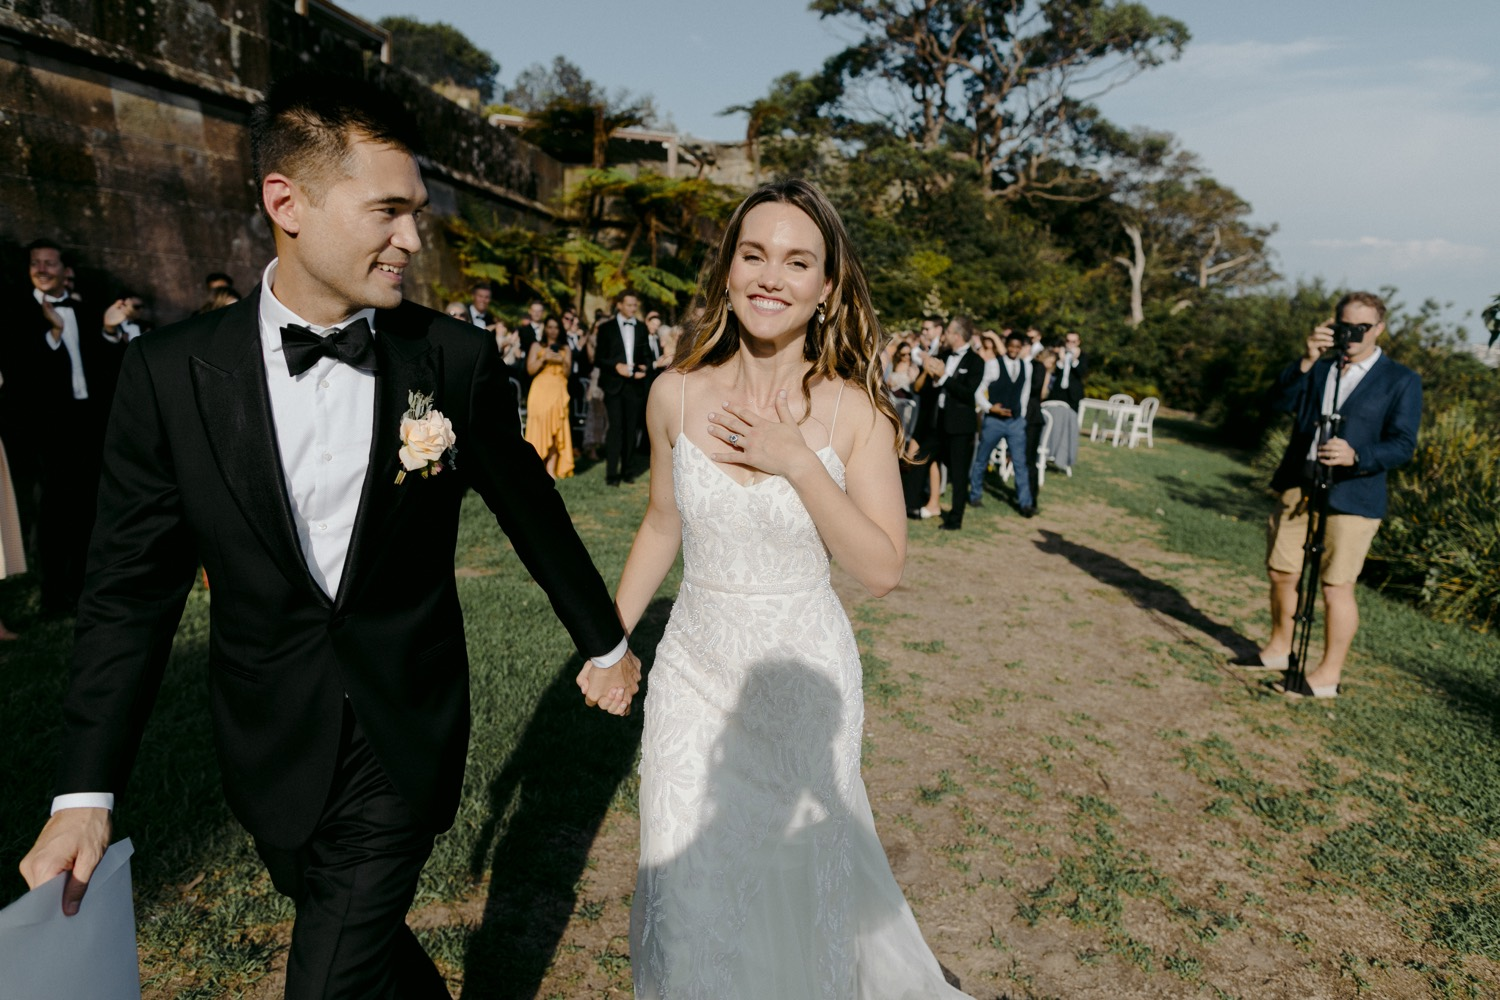 bride caught up in emotion of wedding